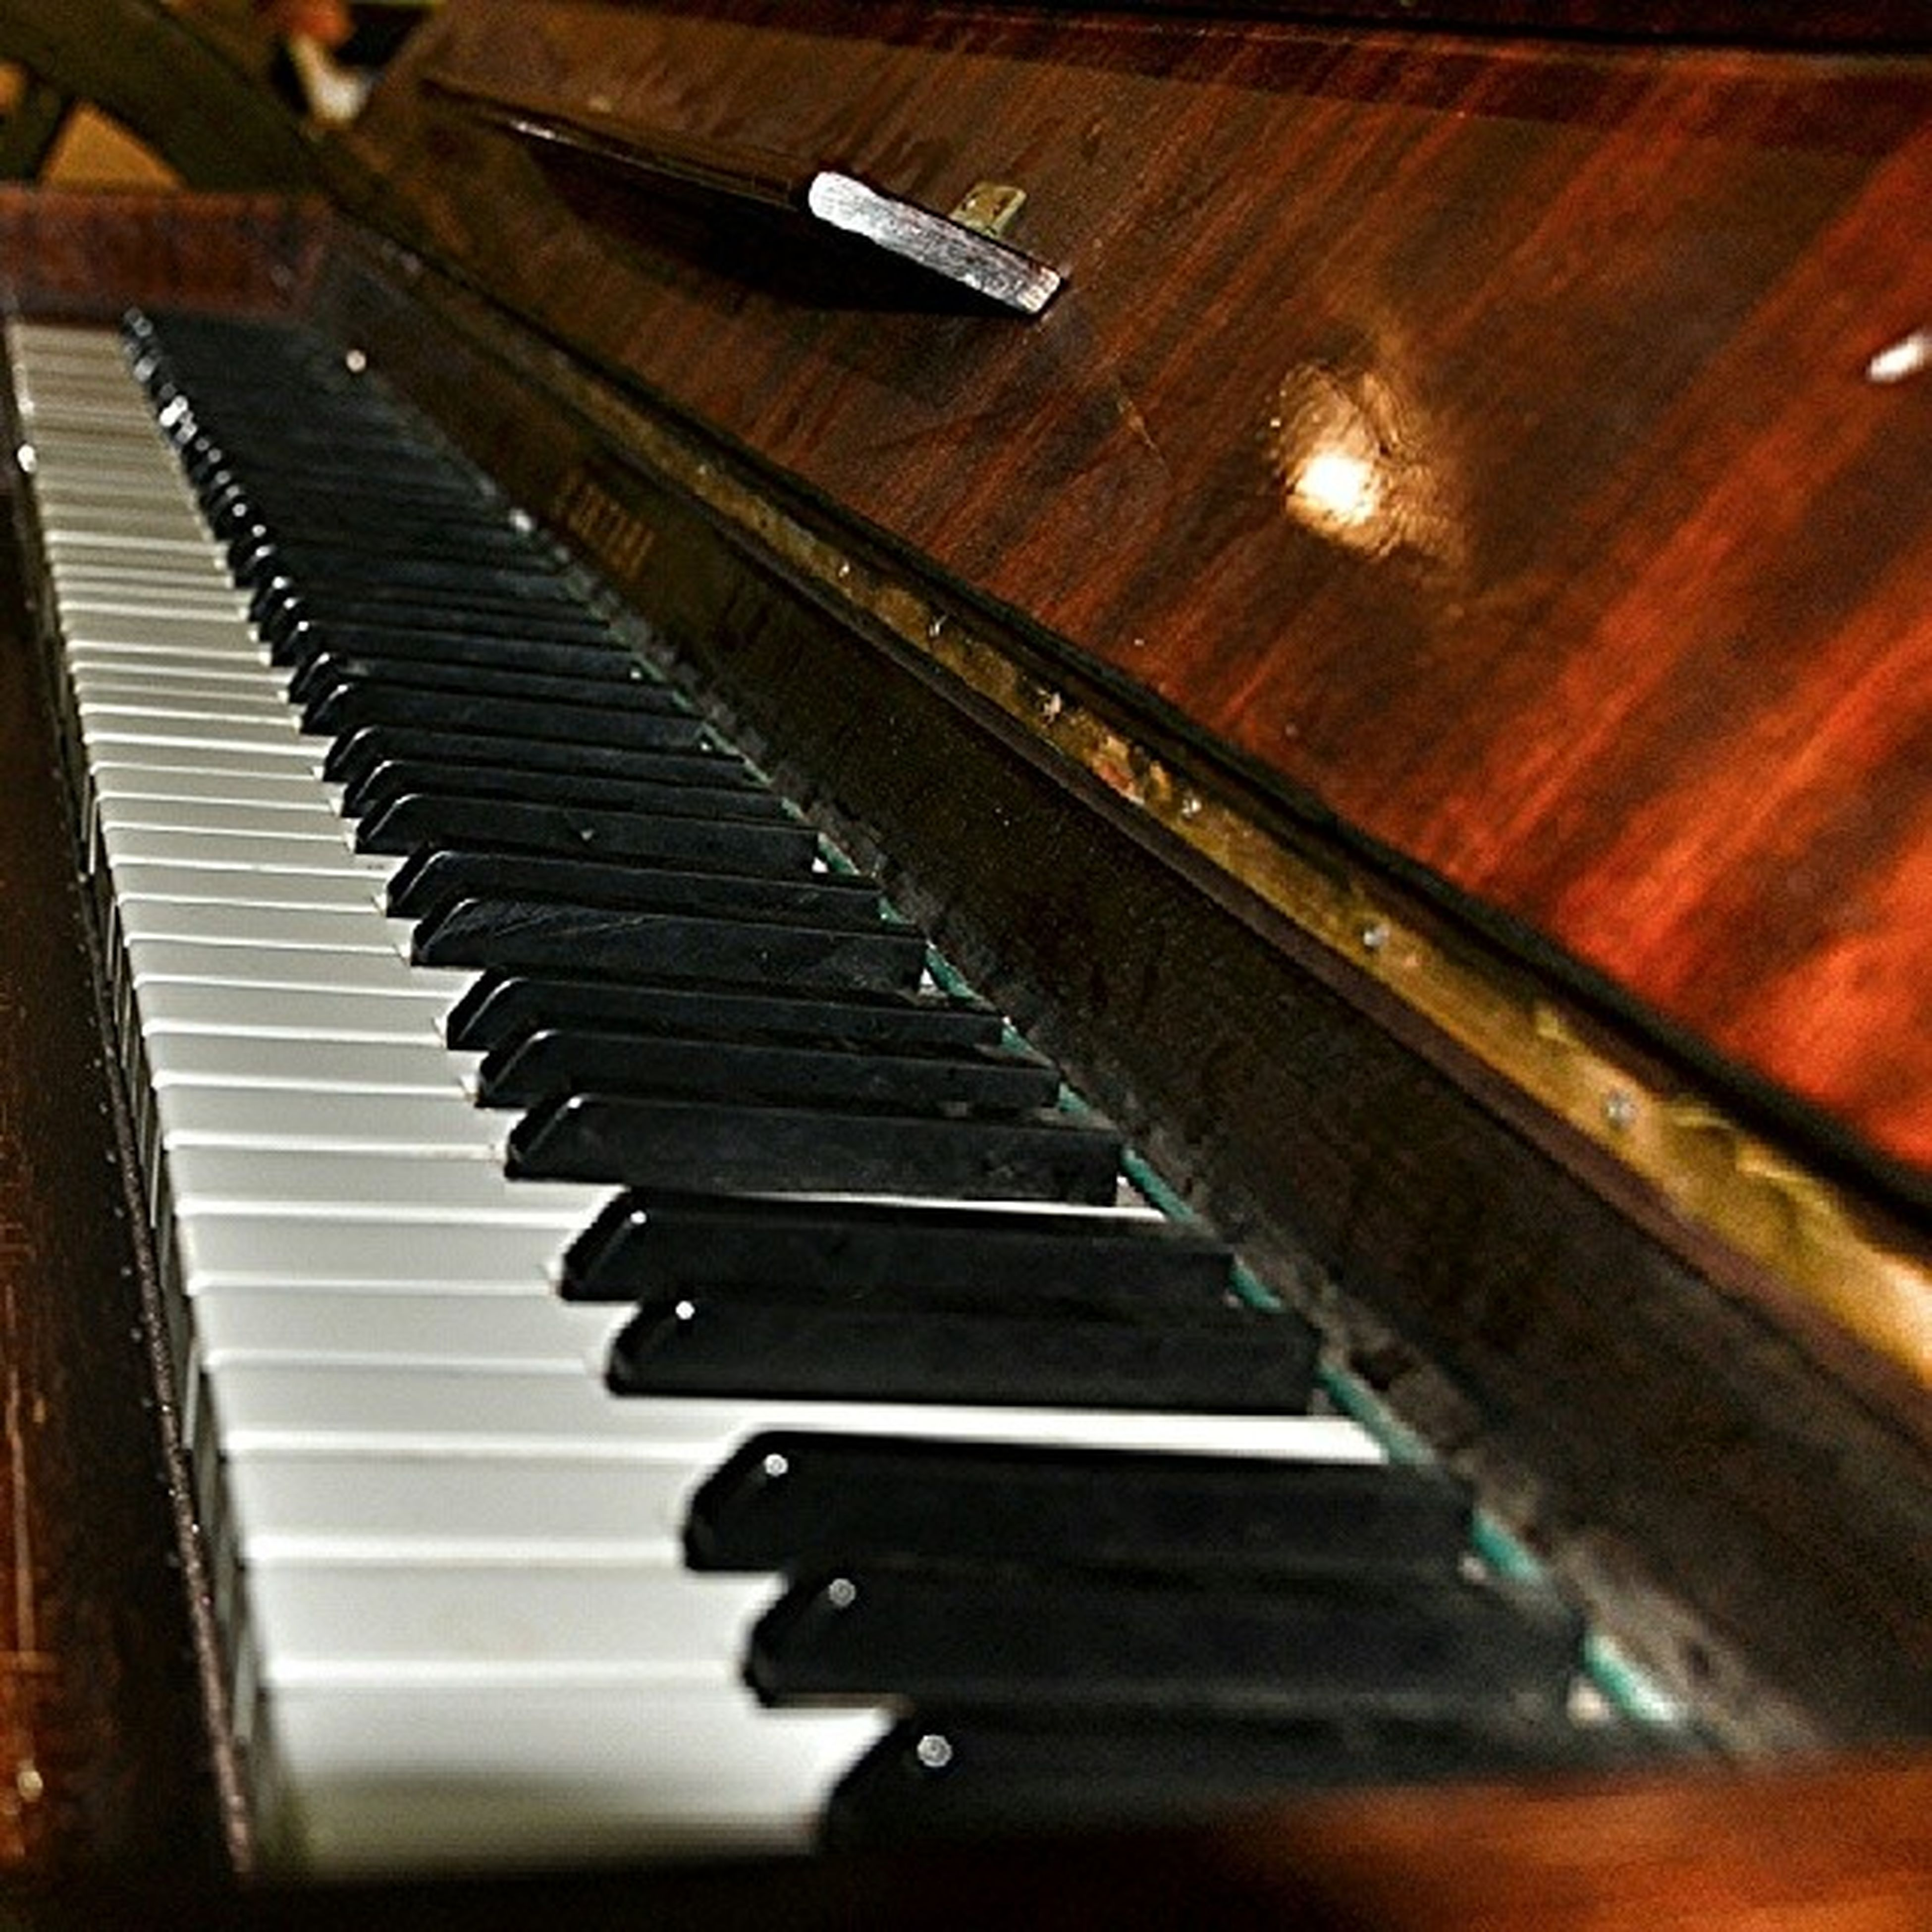 indoors, music, musical instrument, arts culture and entertainment, piano key, musical equipment, piano, close-up, high angle view, technology, guitar, selective focus, musical instrument string, table, still life, steps, wood - material, in a row, steps and staircases, no people